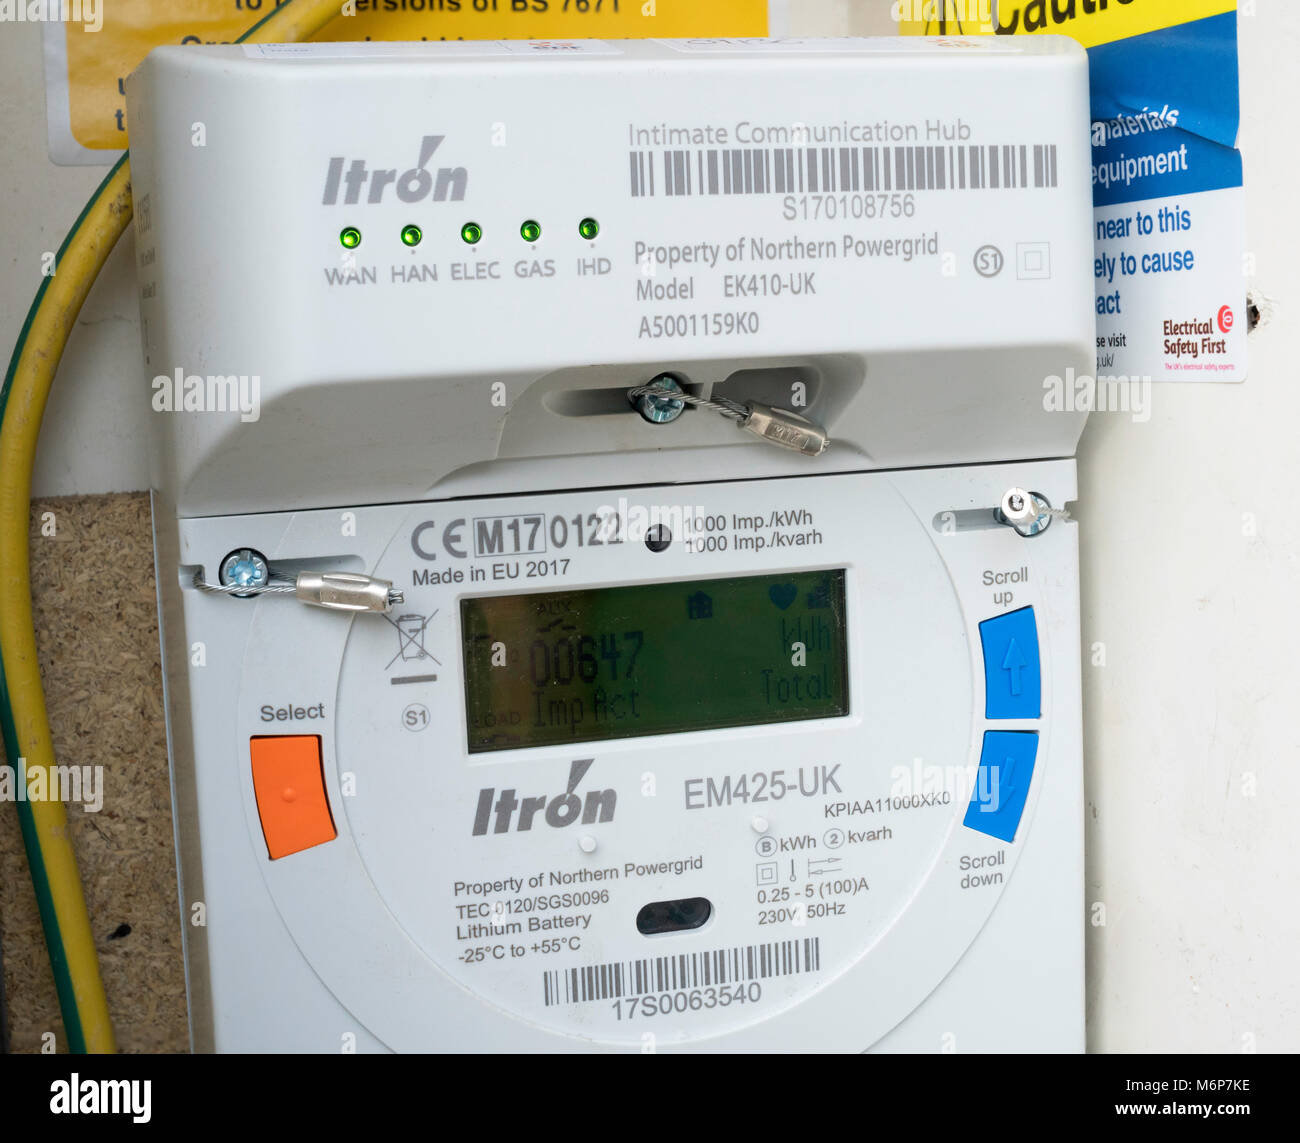 Electric Meter Technology : A northern powergrid itron smart electricity meter for edf